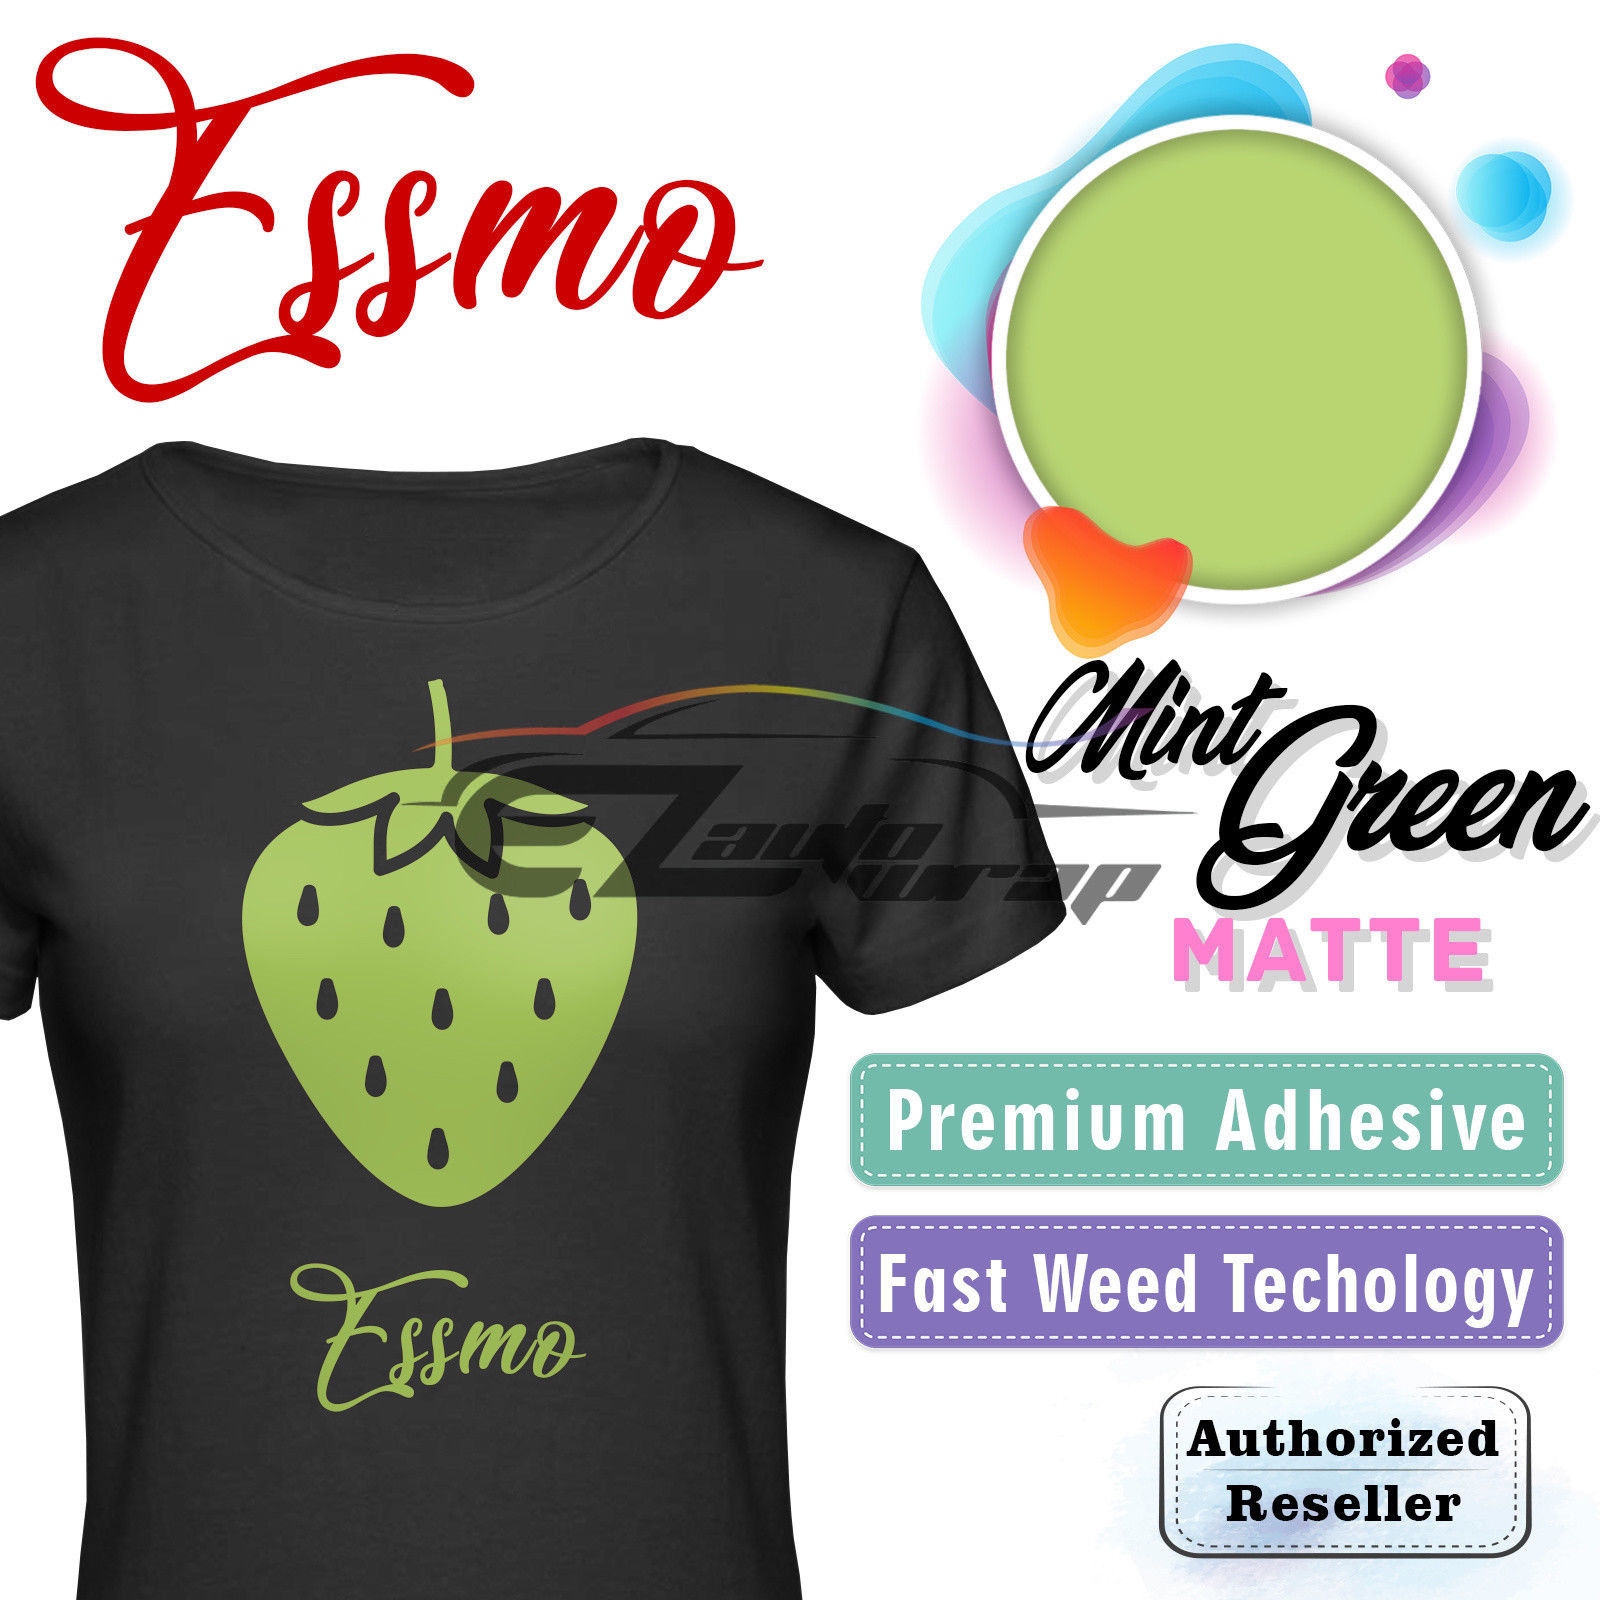 "ESSMO Mint Green Matte Solid Heat Transfer Vinyl HTV Sheet T-Shirt 20"" Wide Iron On Heat Press 20""x96"""